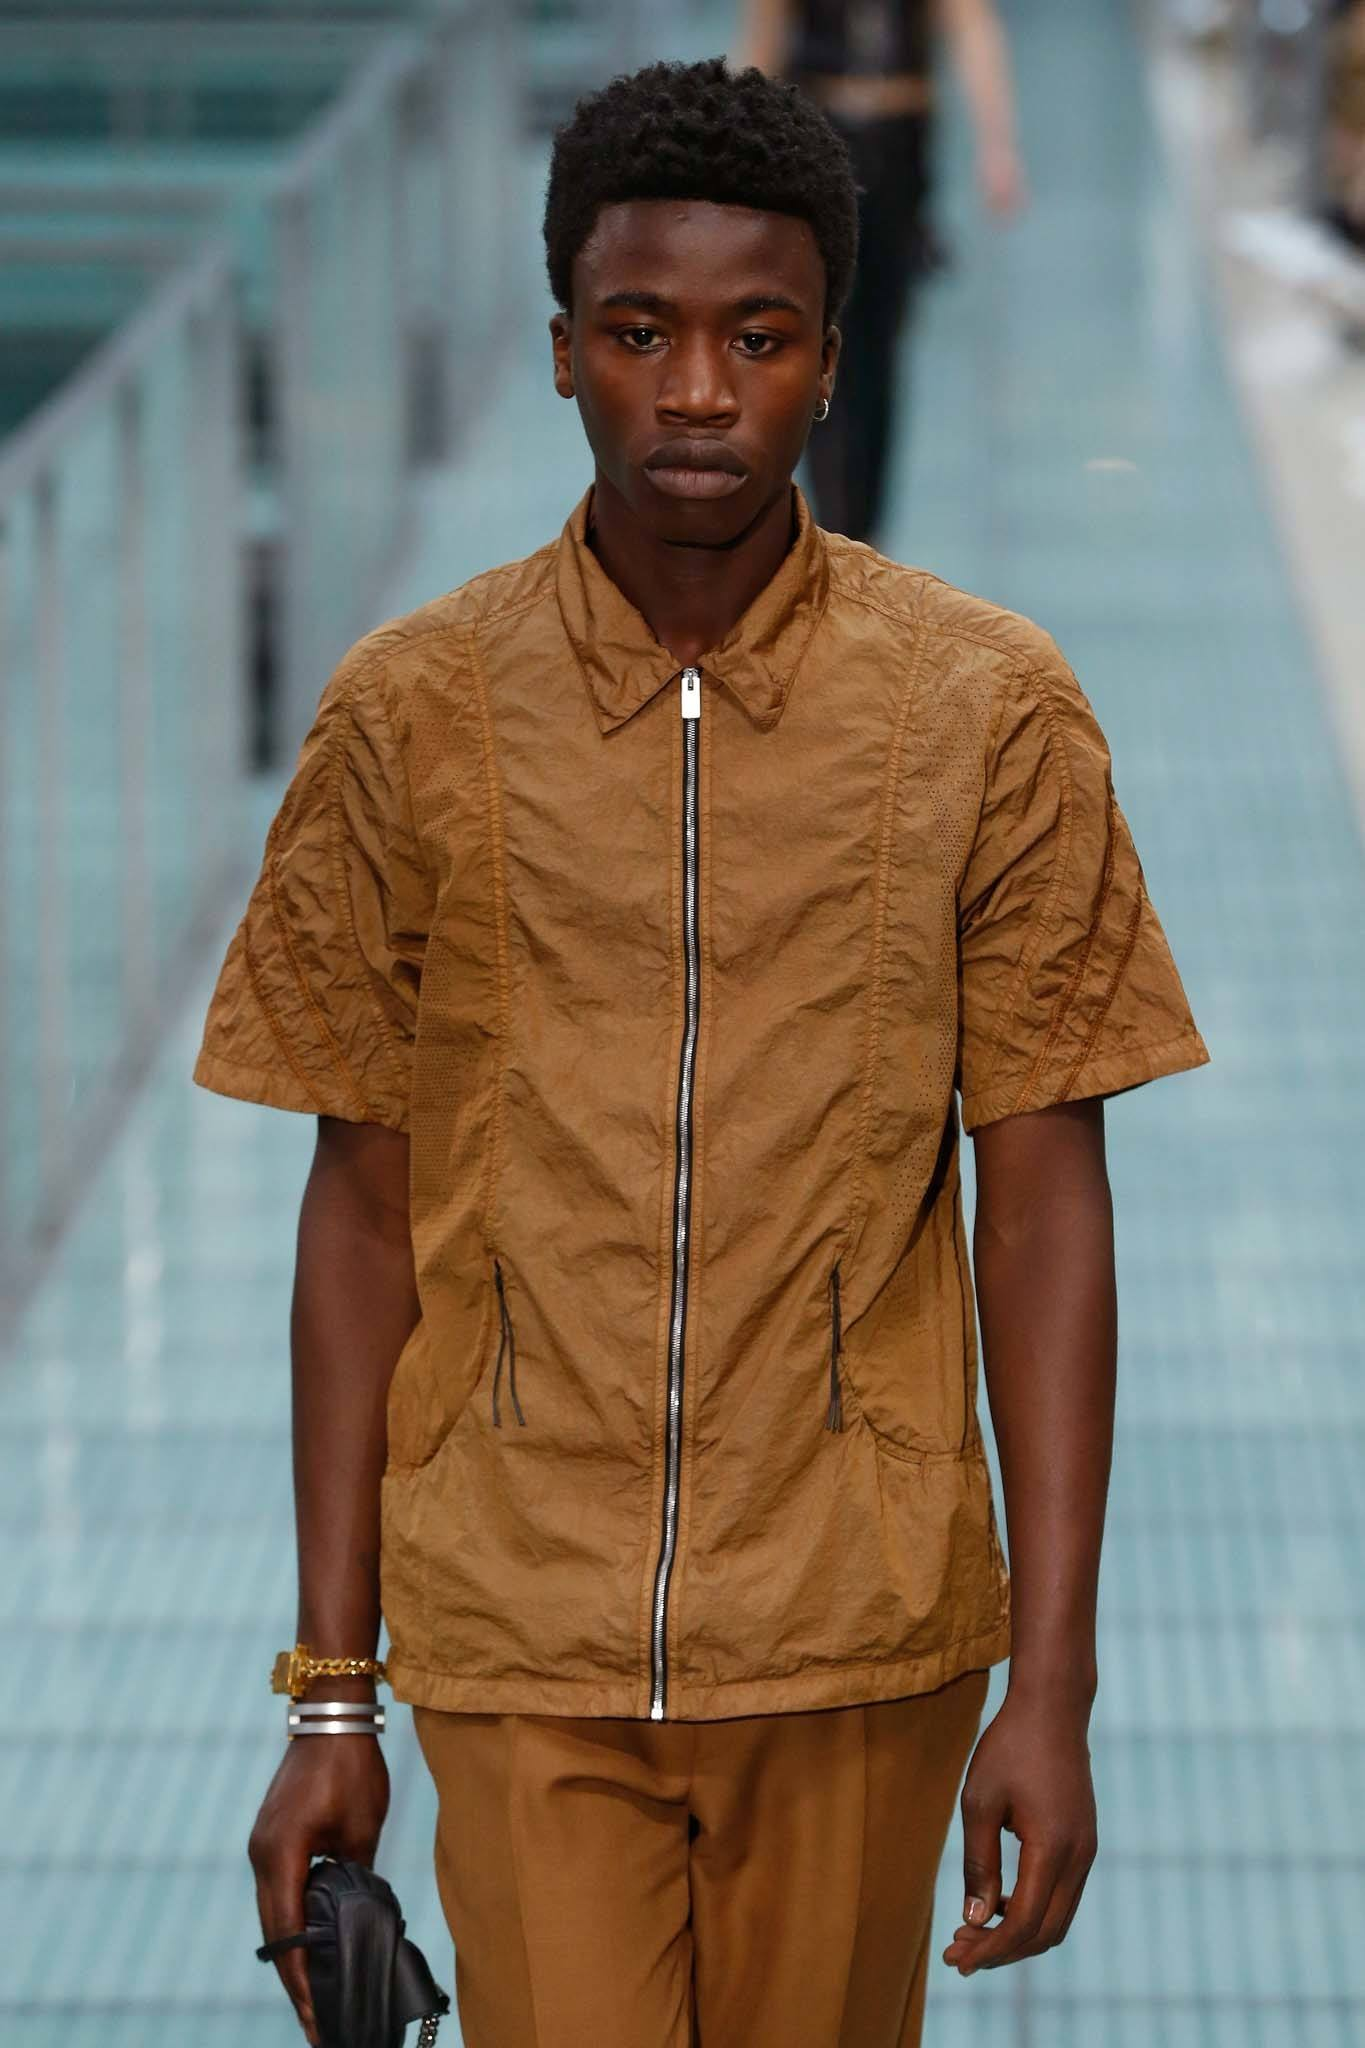 Male runway model with afro high top